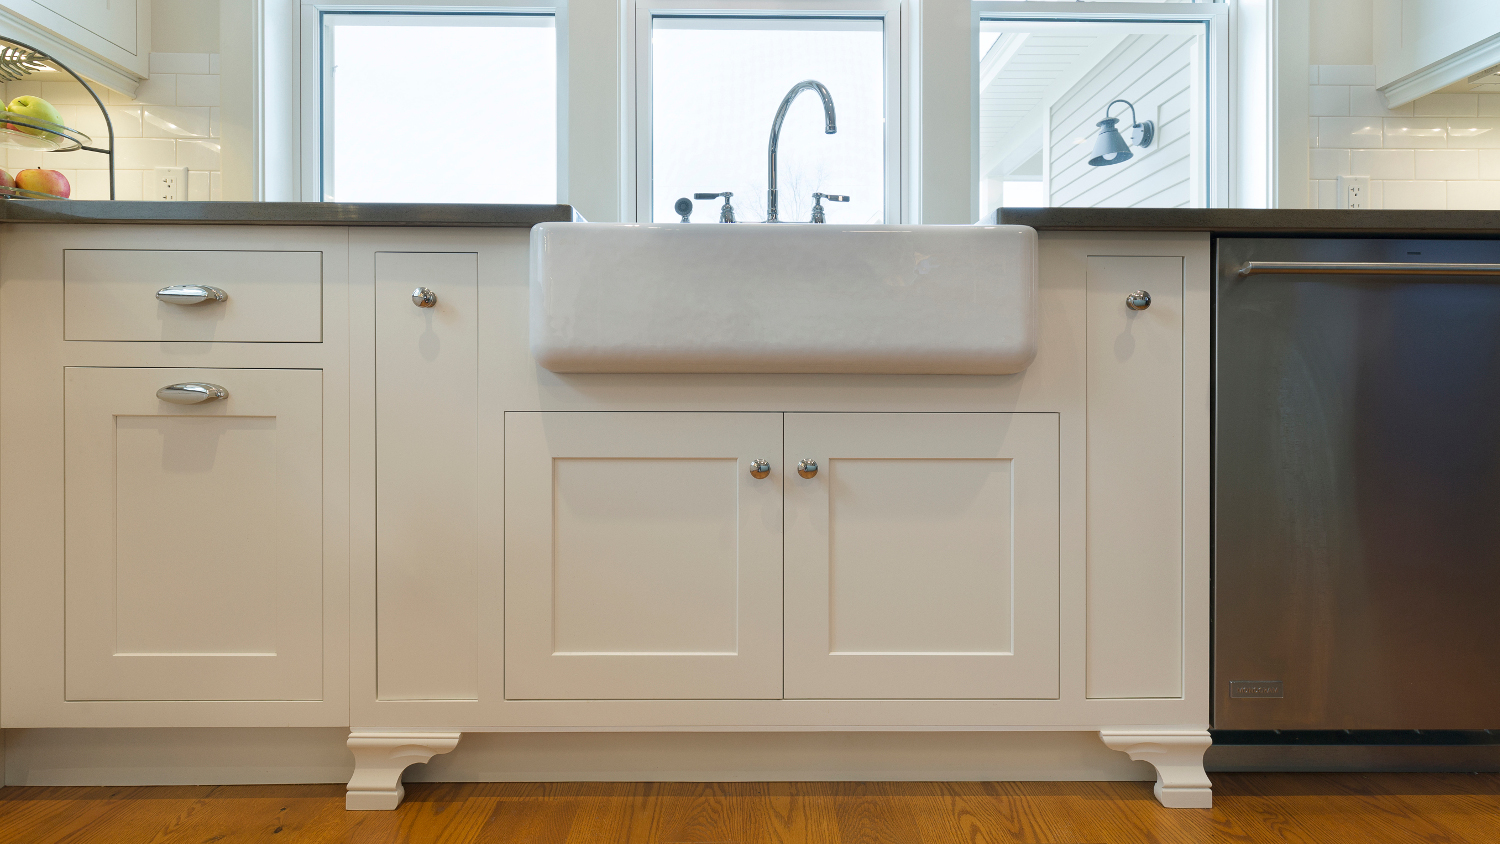 The farm style apron front sink base has handy pullouts that house necessary cleaning aids. The ogee feet create the charm of a furniture piece.